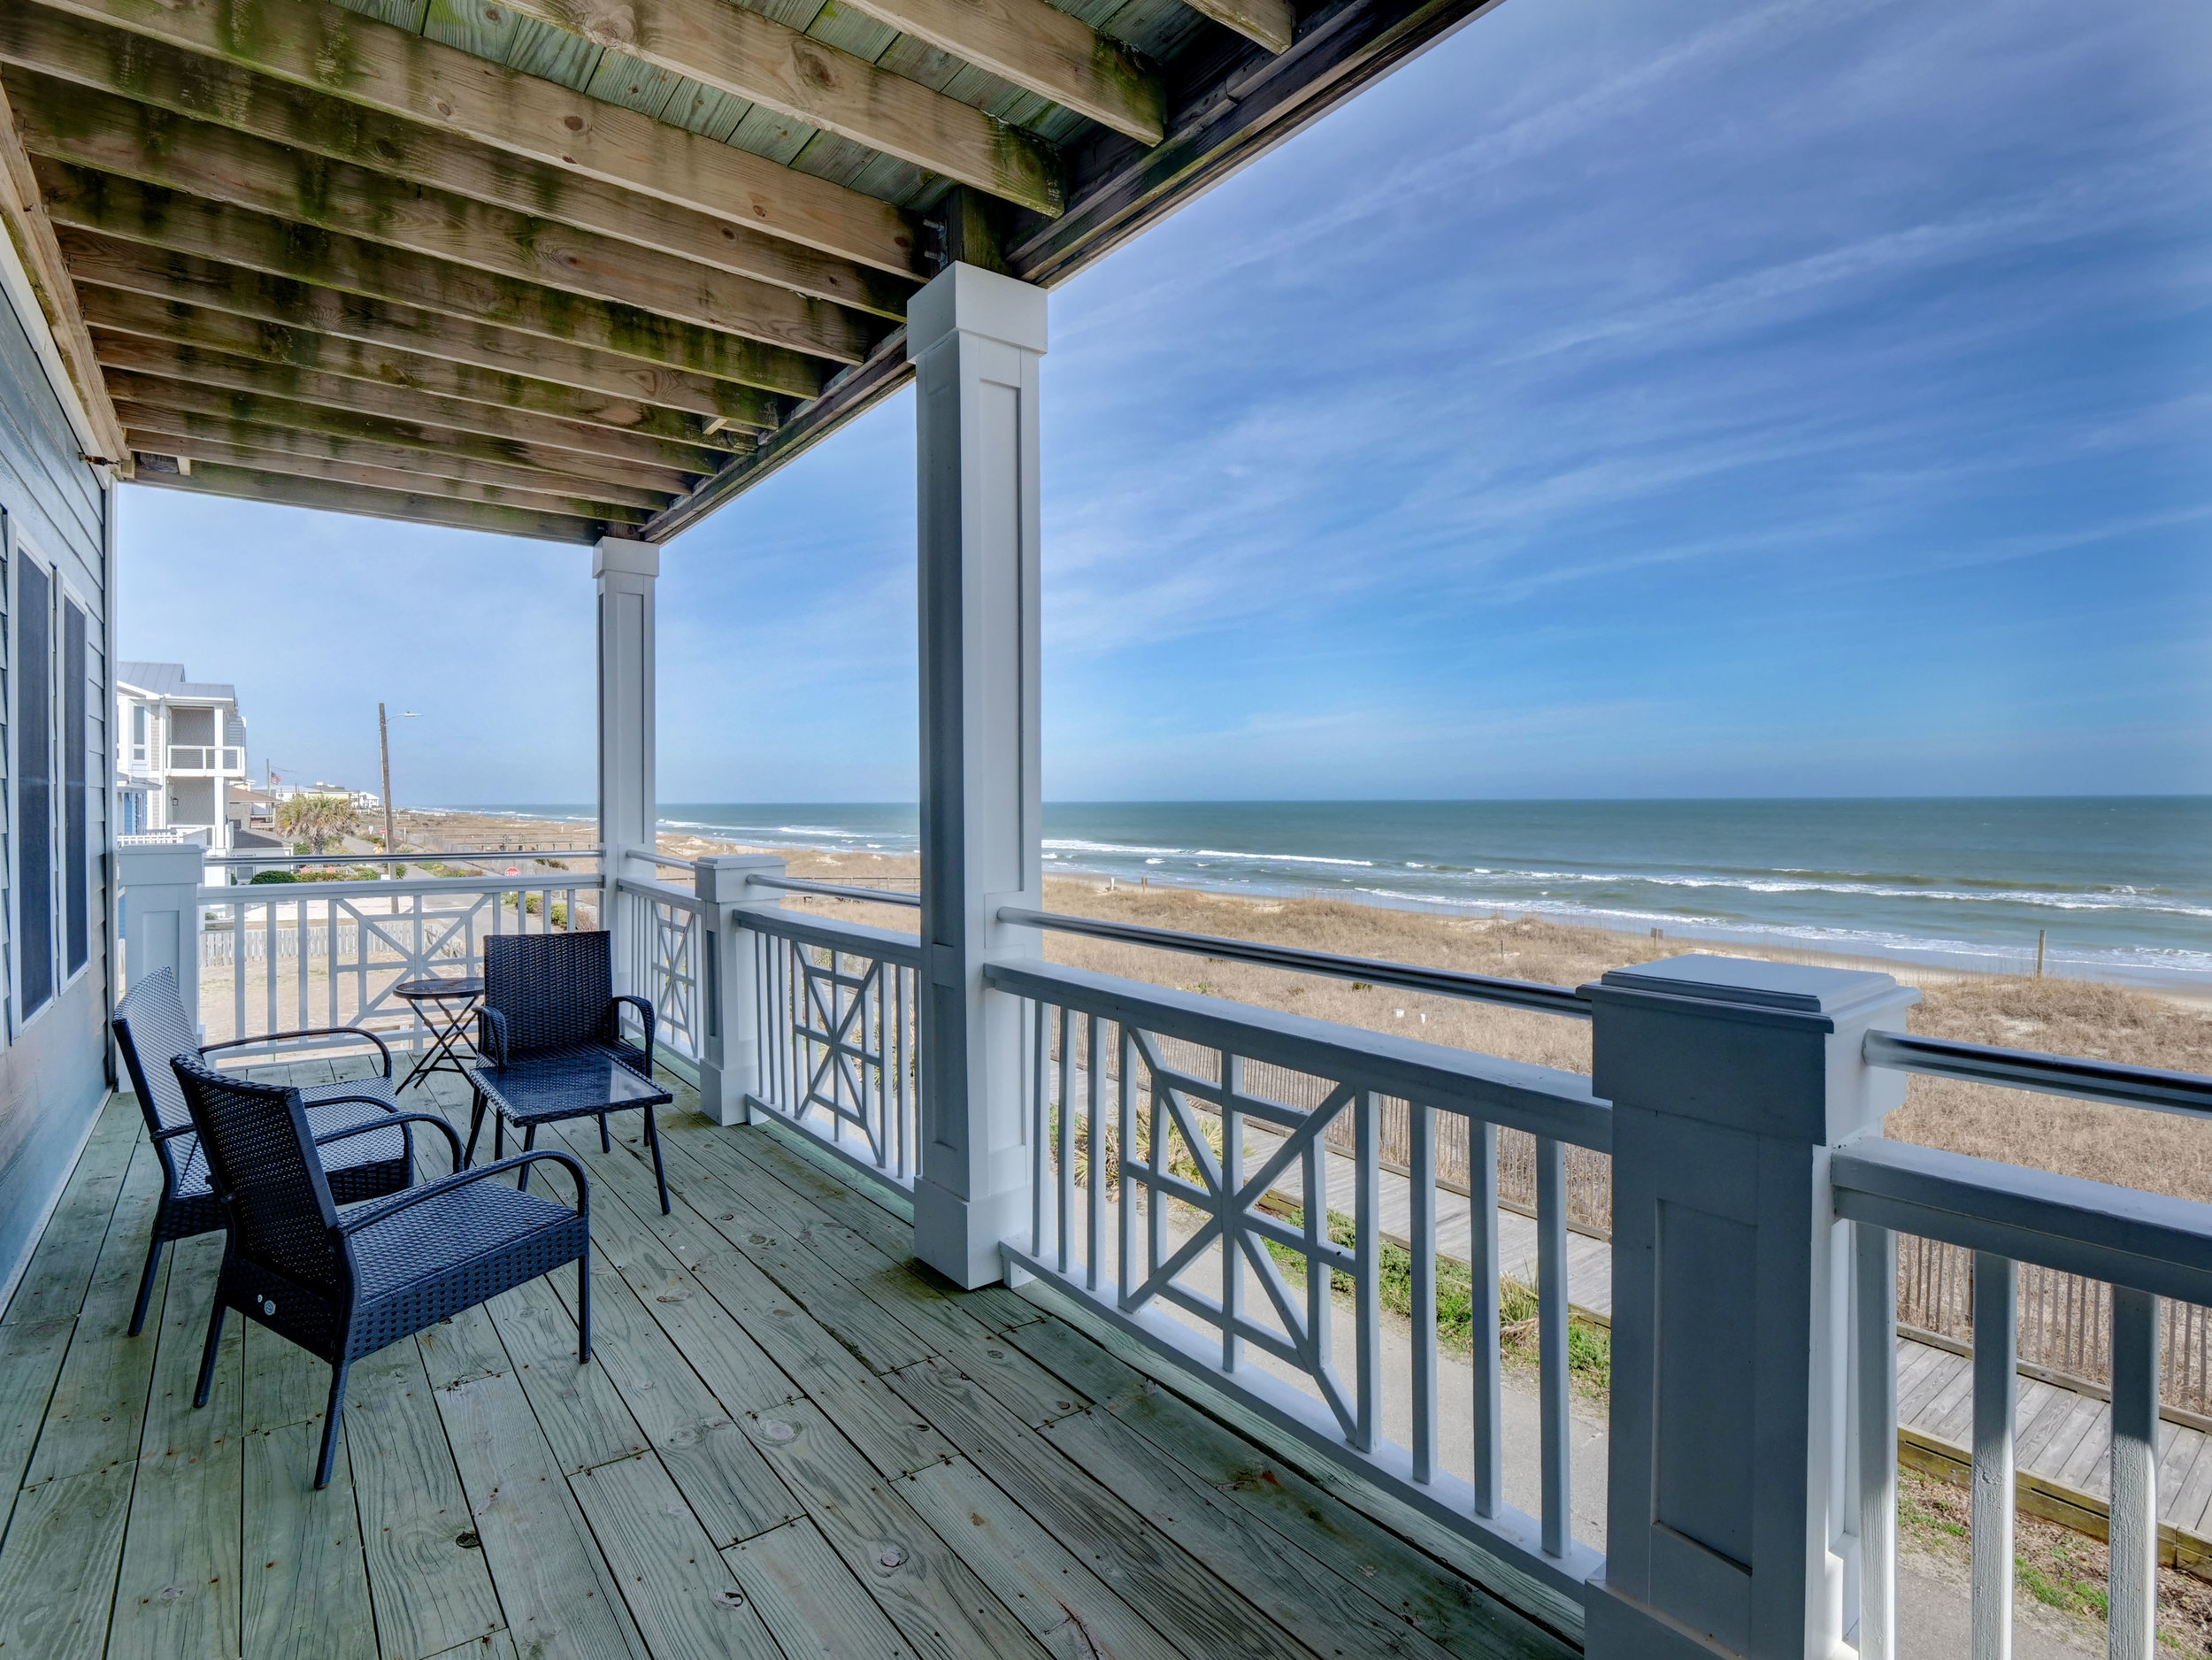 202 N Fort Fisher Blvd Unit 8-print-008-67-Covered Porch view 2-3665x2750-300dpi.jpg